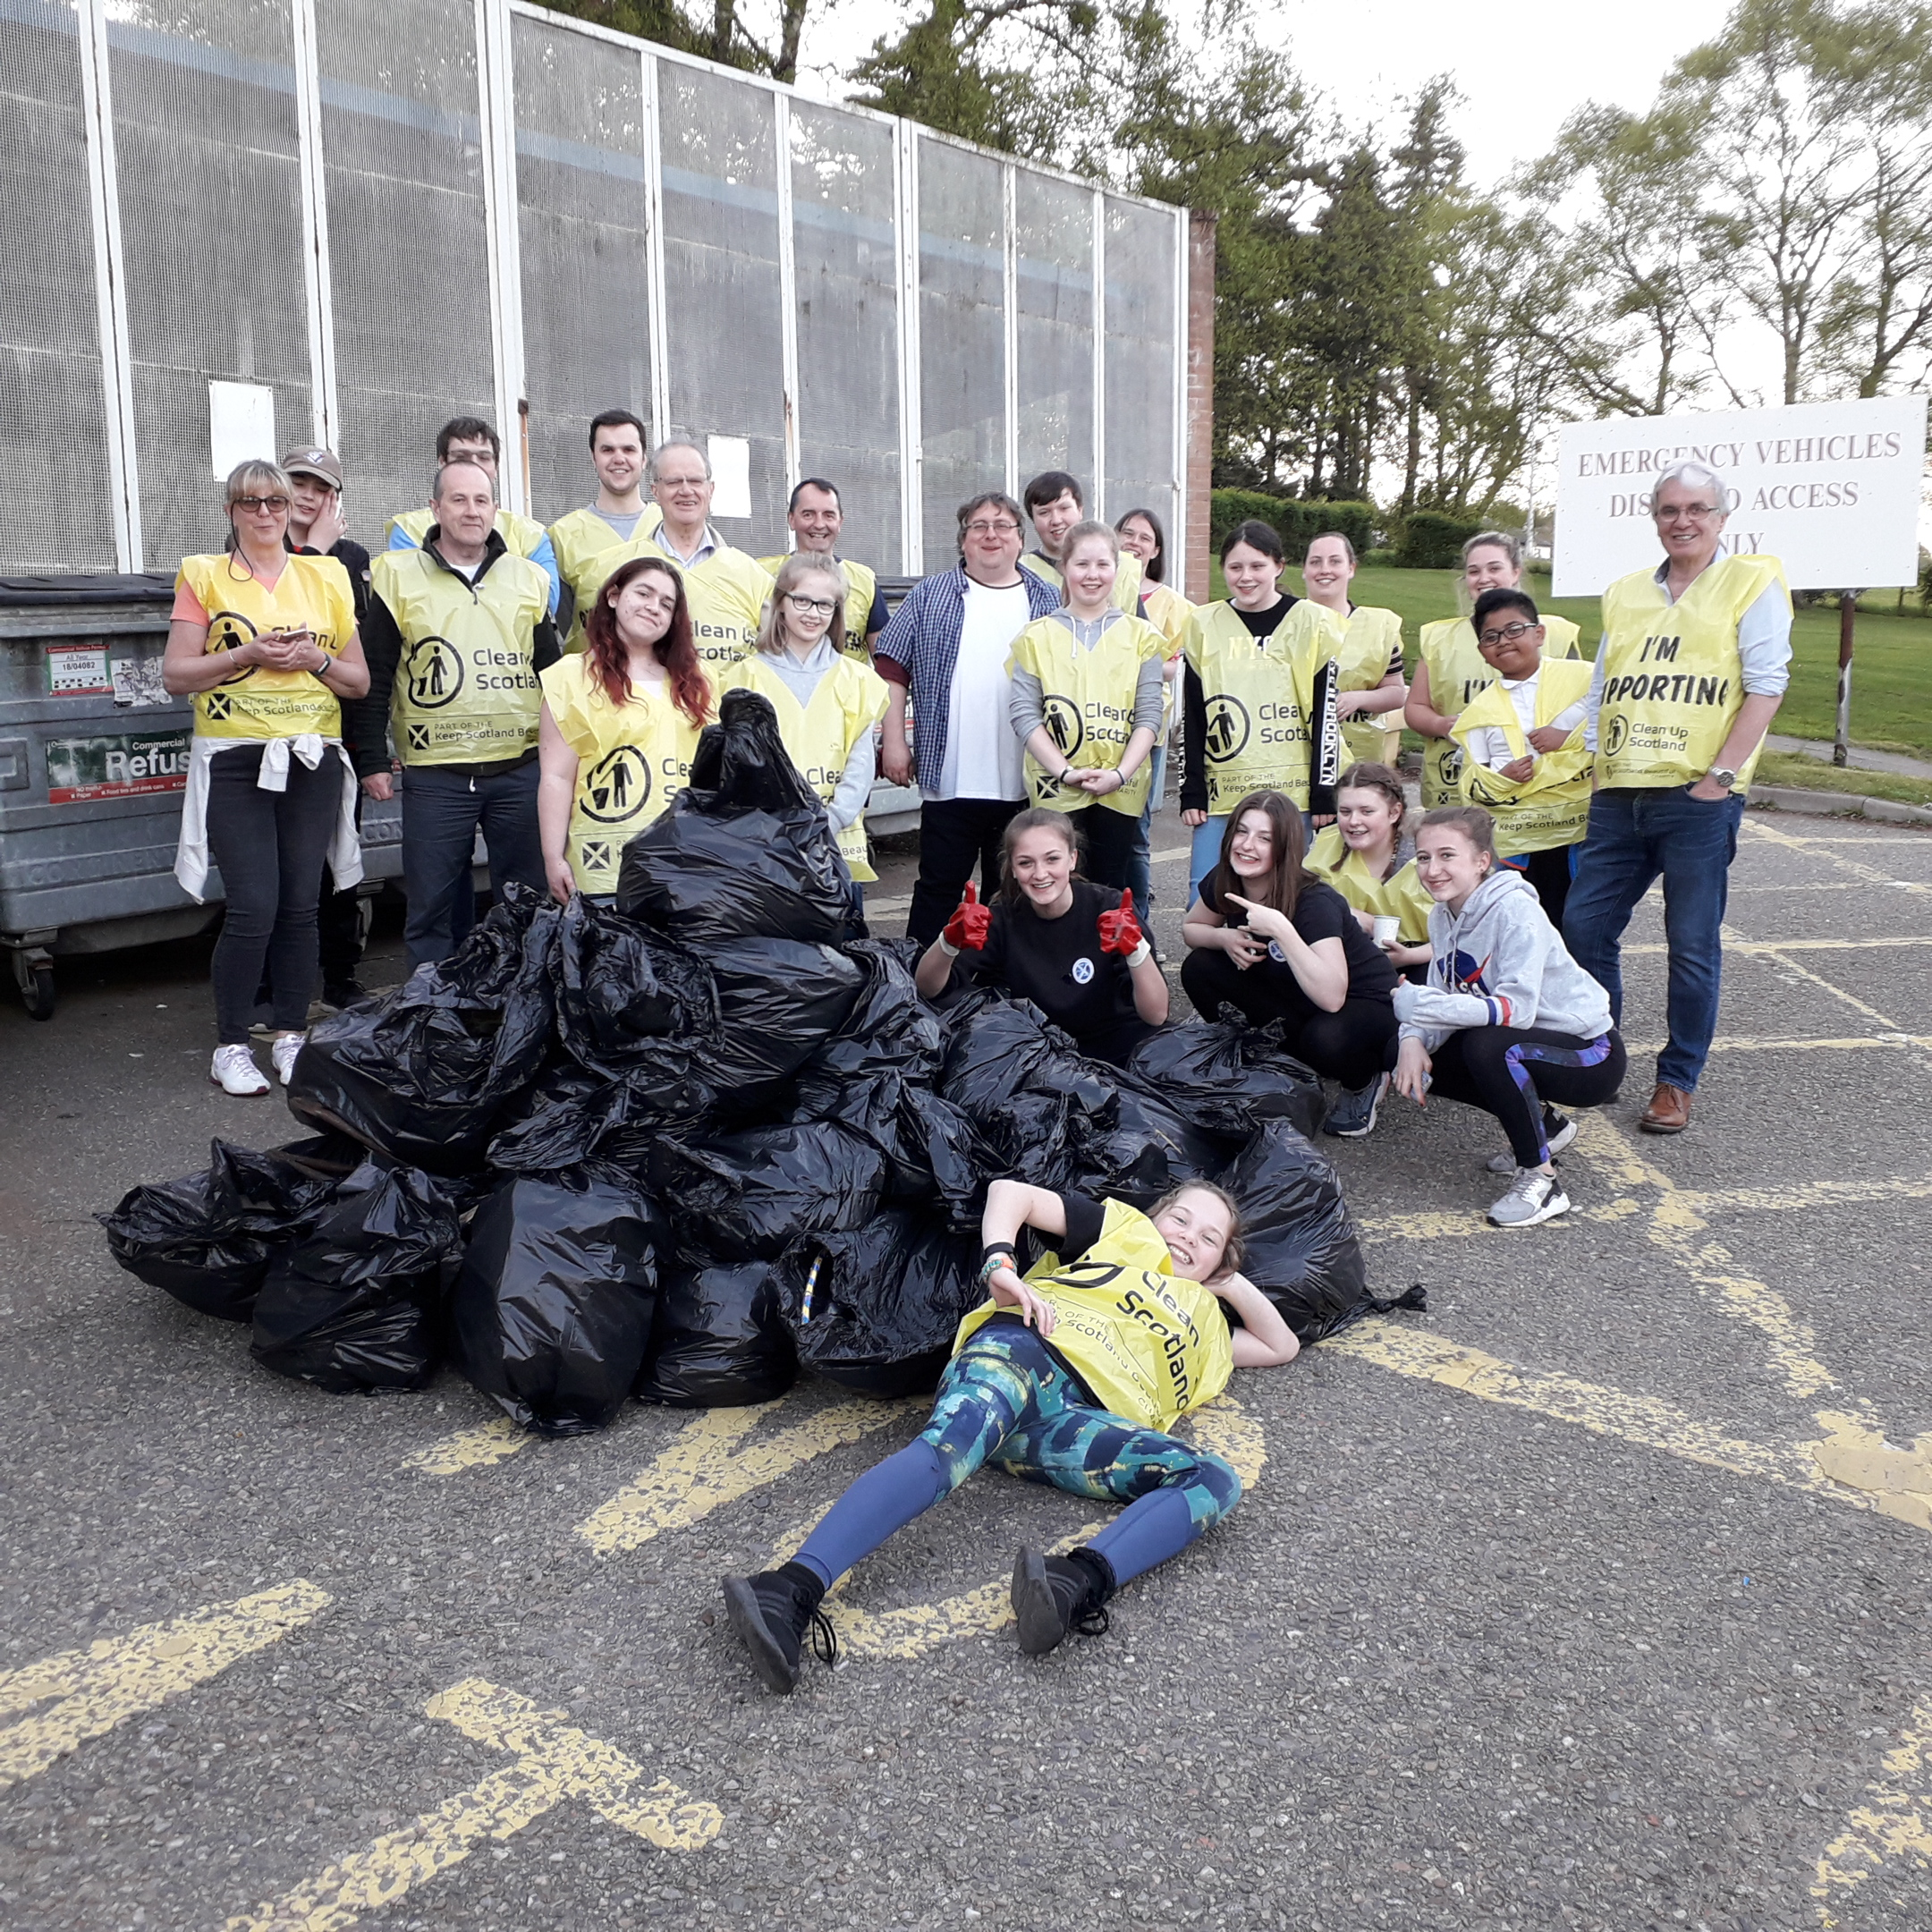 Litter collected by volunteers